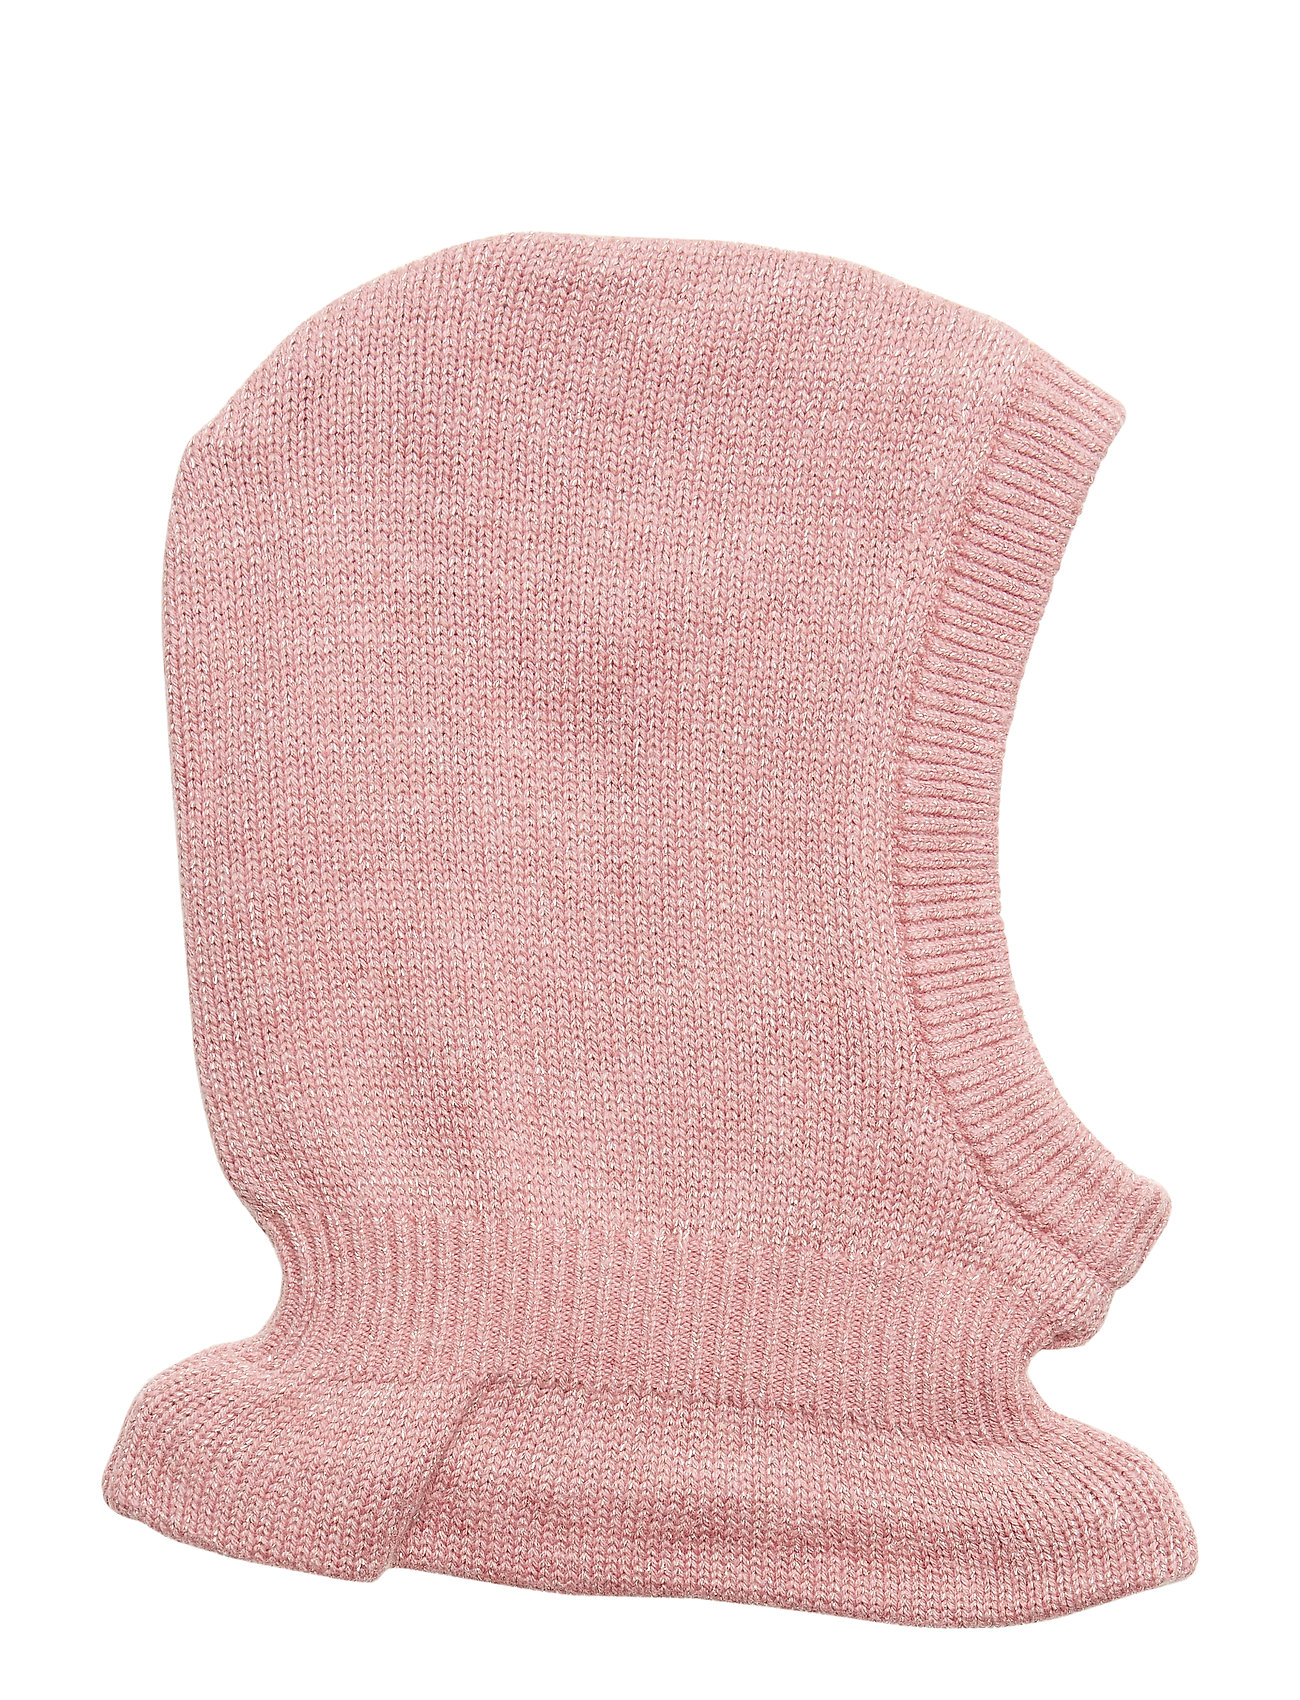 Image of Knitted Balaclava Hat Lyserød WHEAT (3072431873)